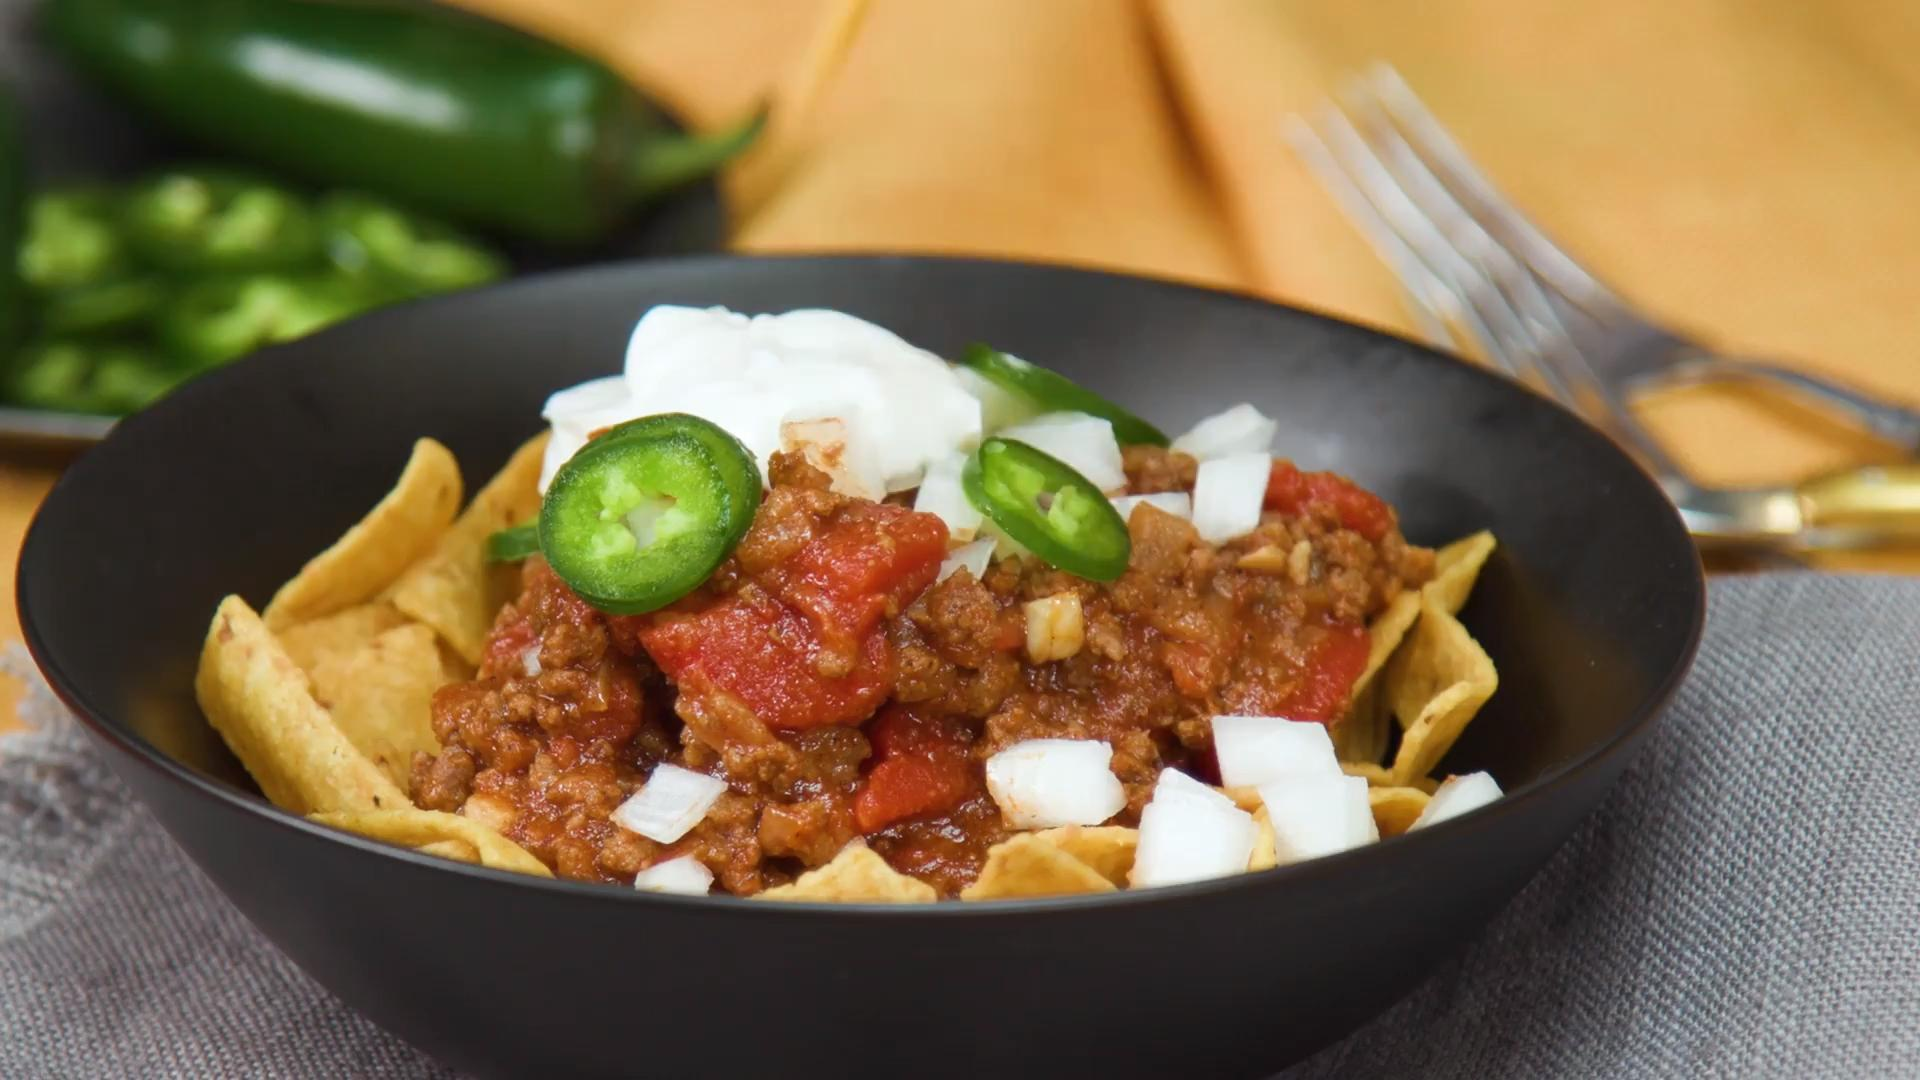 Wick Fowler S Famous 2 Alarm Chili Kit Is The Easy Secret To The Most Authentic Old Fashioned Texas Chili Southern Living